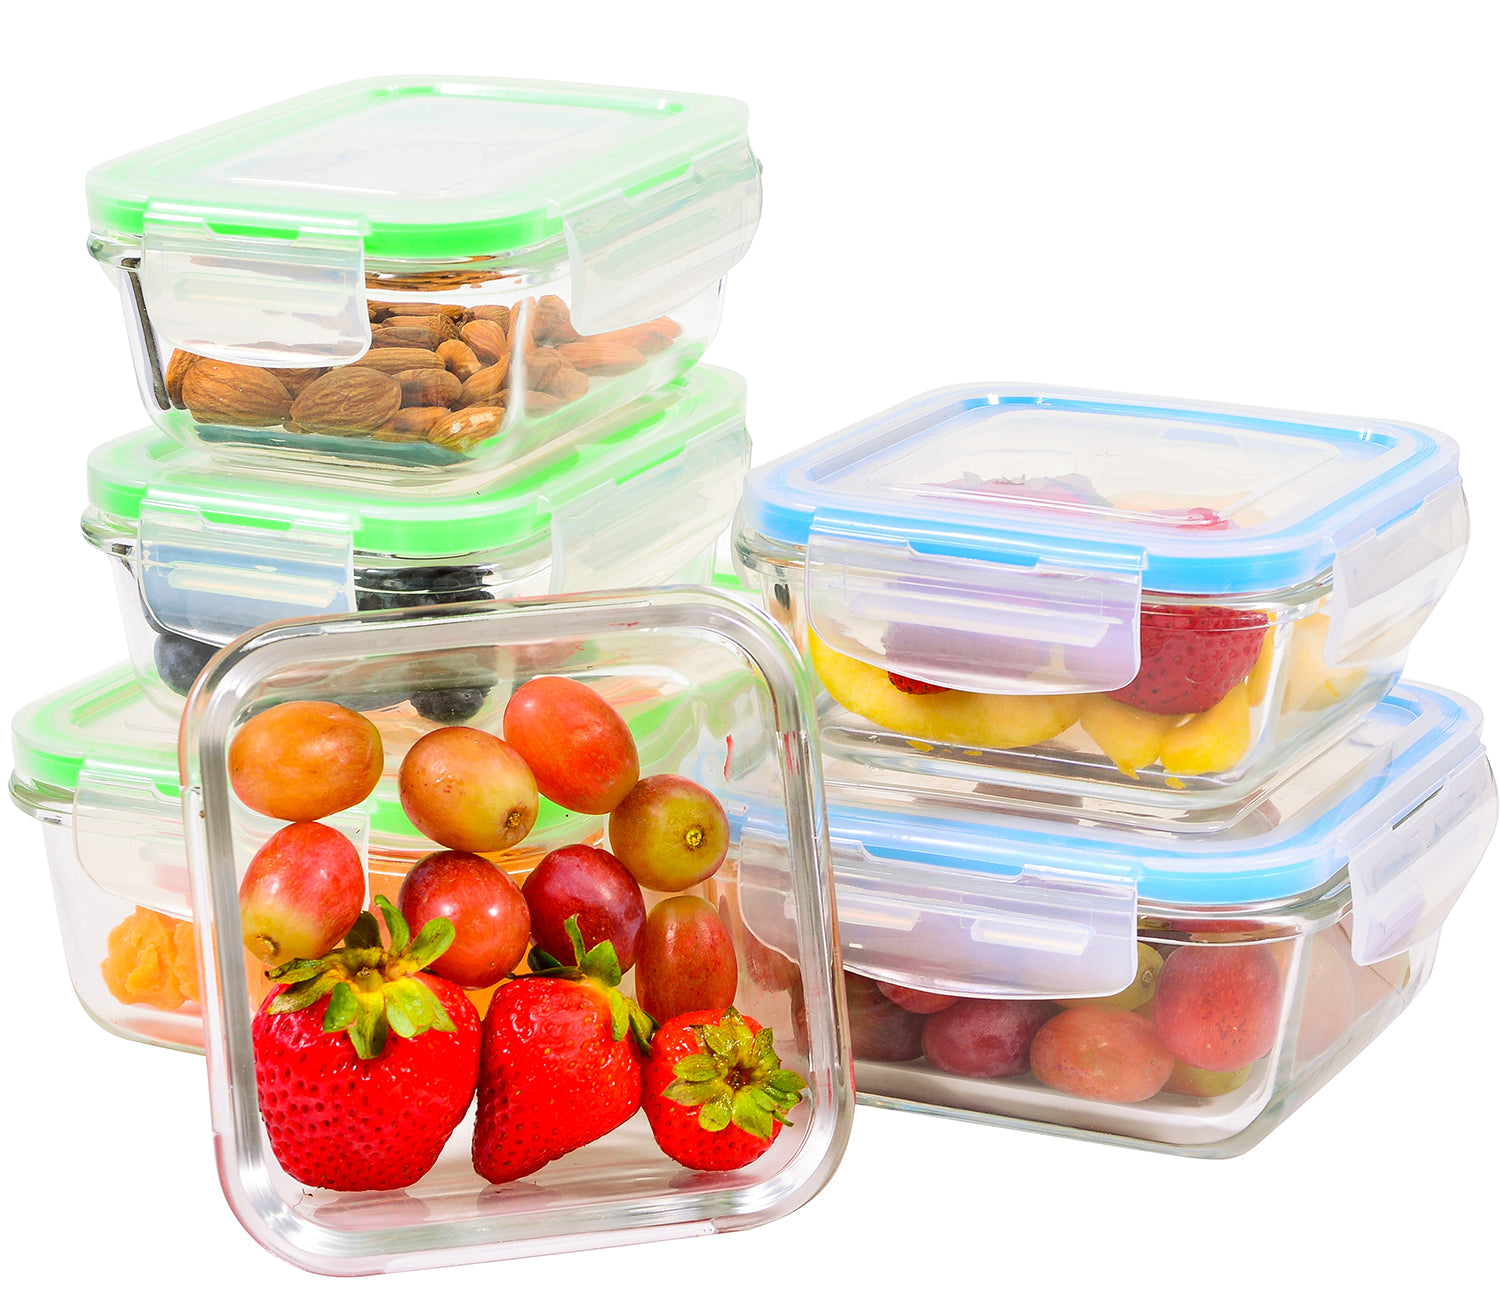 Elacra Glass Meal Prep Containers with Locking Lids [6-Piece] - Leakproof  Glass Food Storage Containers for Kitchen Organization and Storage - ...